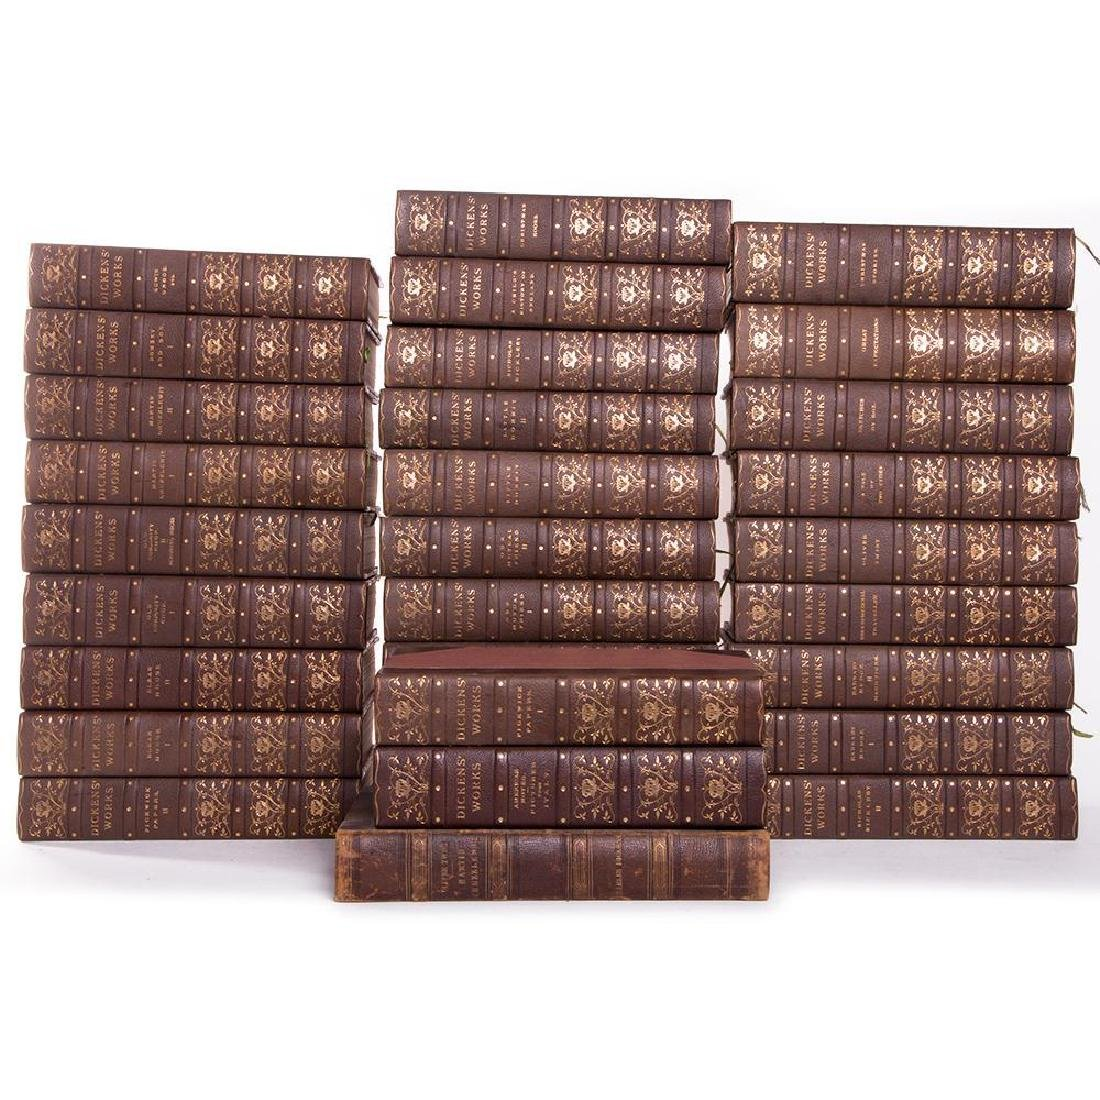 Thirty volumes by Charles Dickens